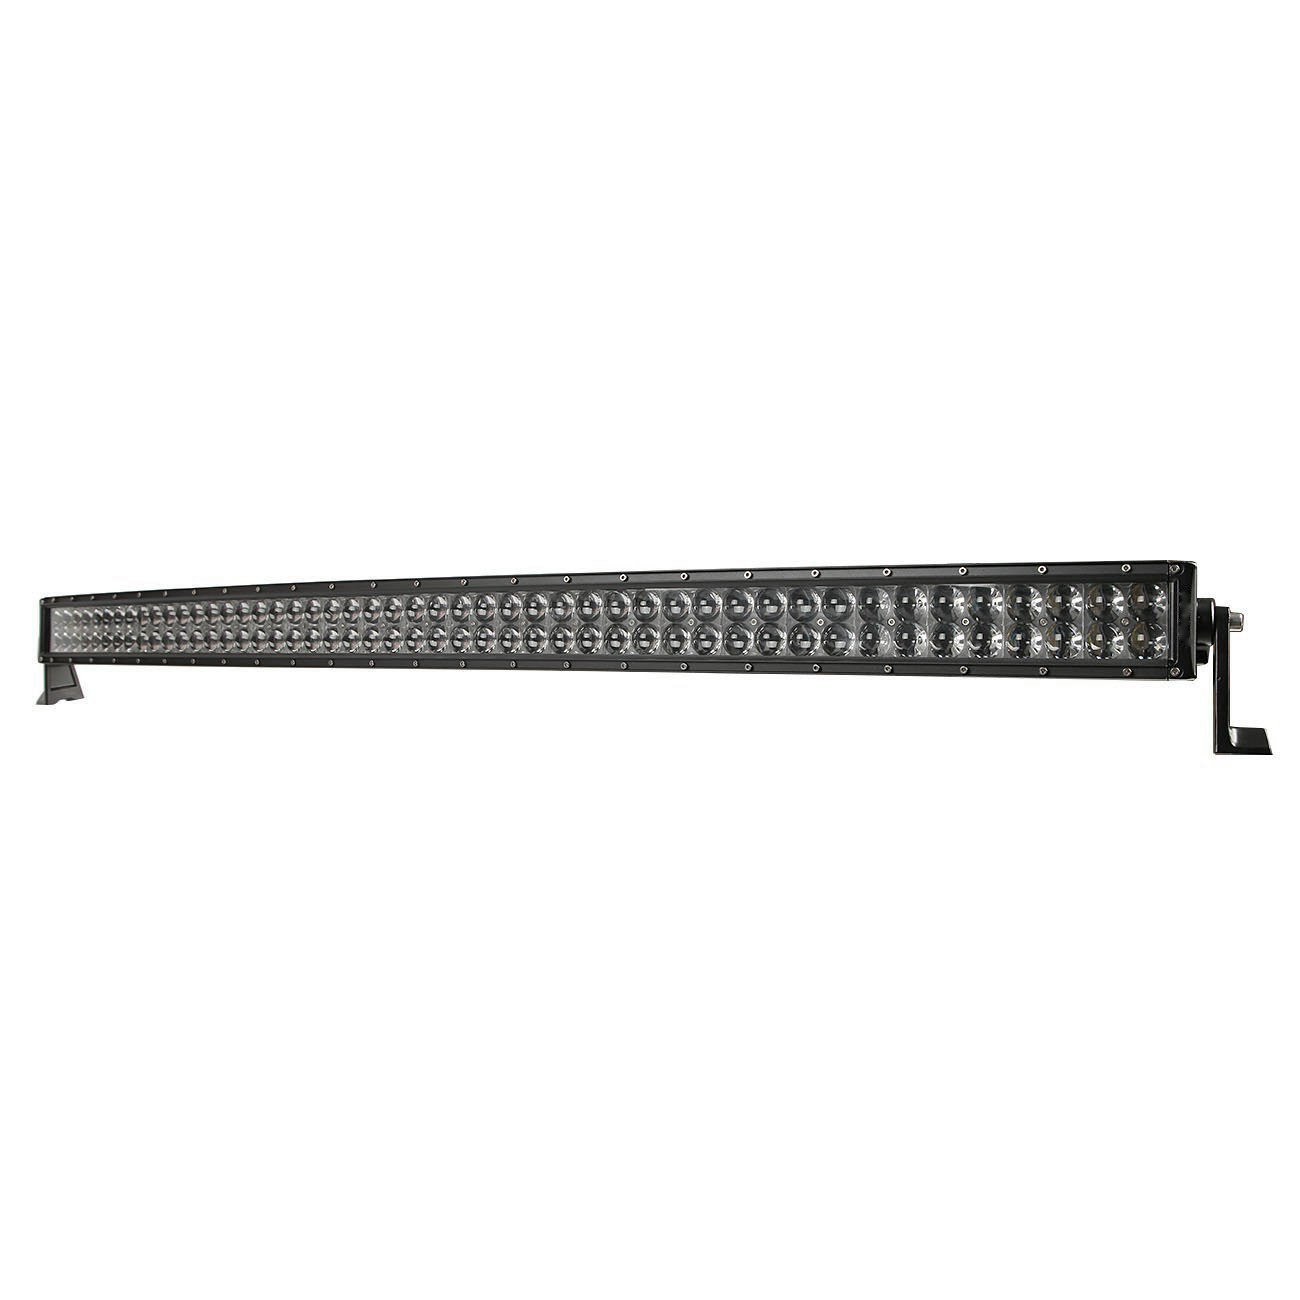 50'' 480W Osram Curved LED Work Light Bar Trucks 4X4 ATV Offroad IP67 96X5W Osram ledbar 50 inch